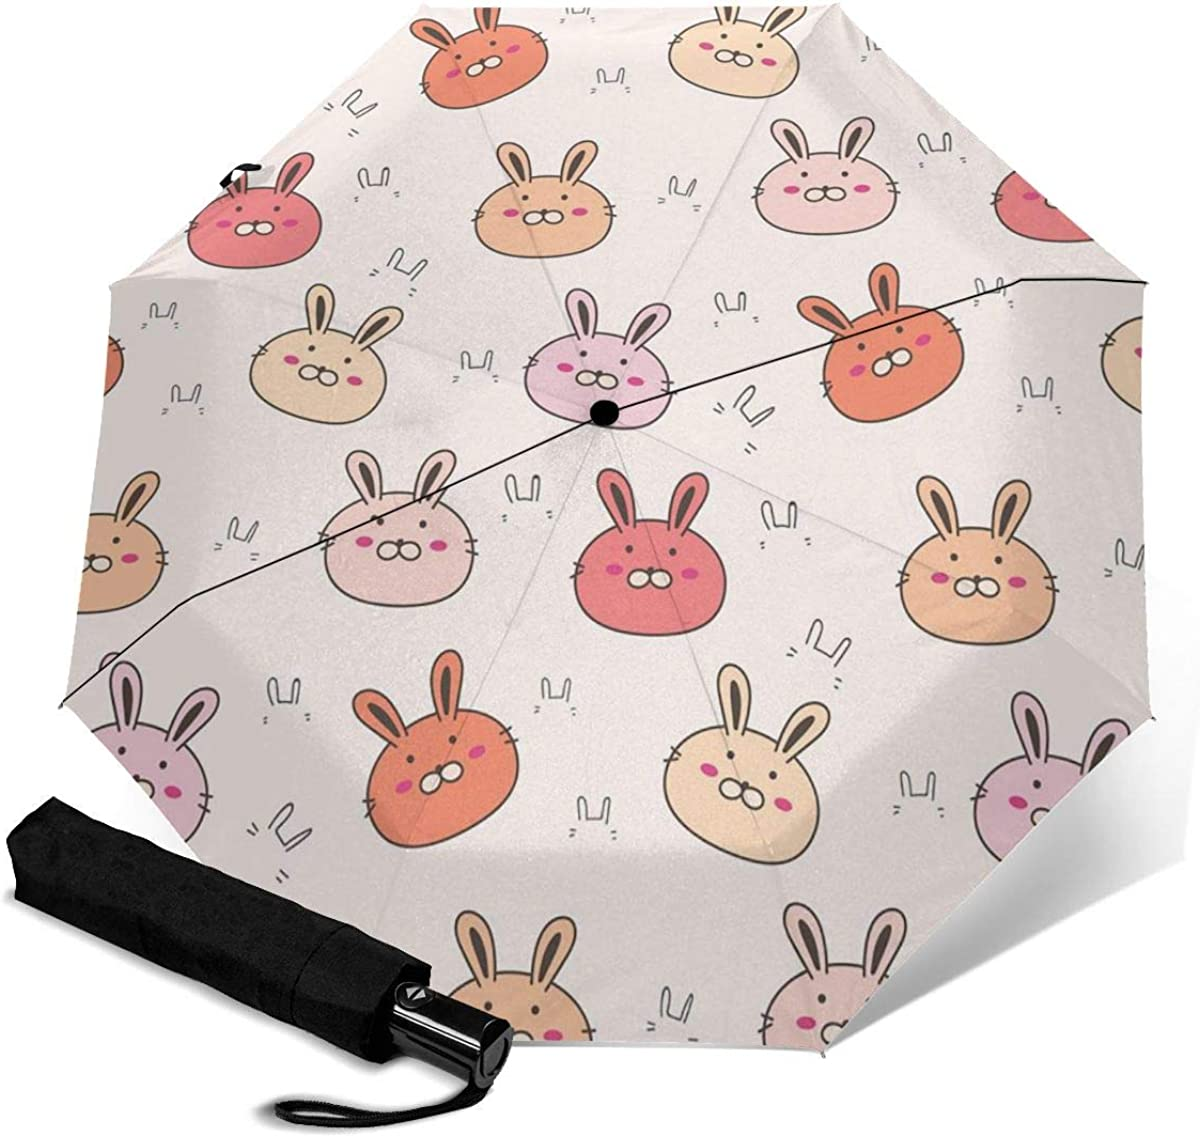 Colored Bear Avatar Compact Travel Umbrella Windproof Reinforced Canopy 8 Ribs Umbrella Auto Open And Close Button Customized